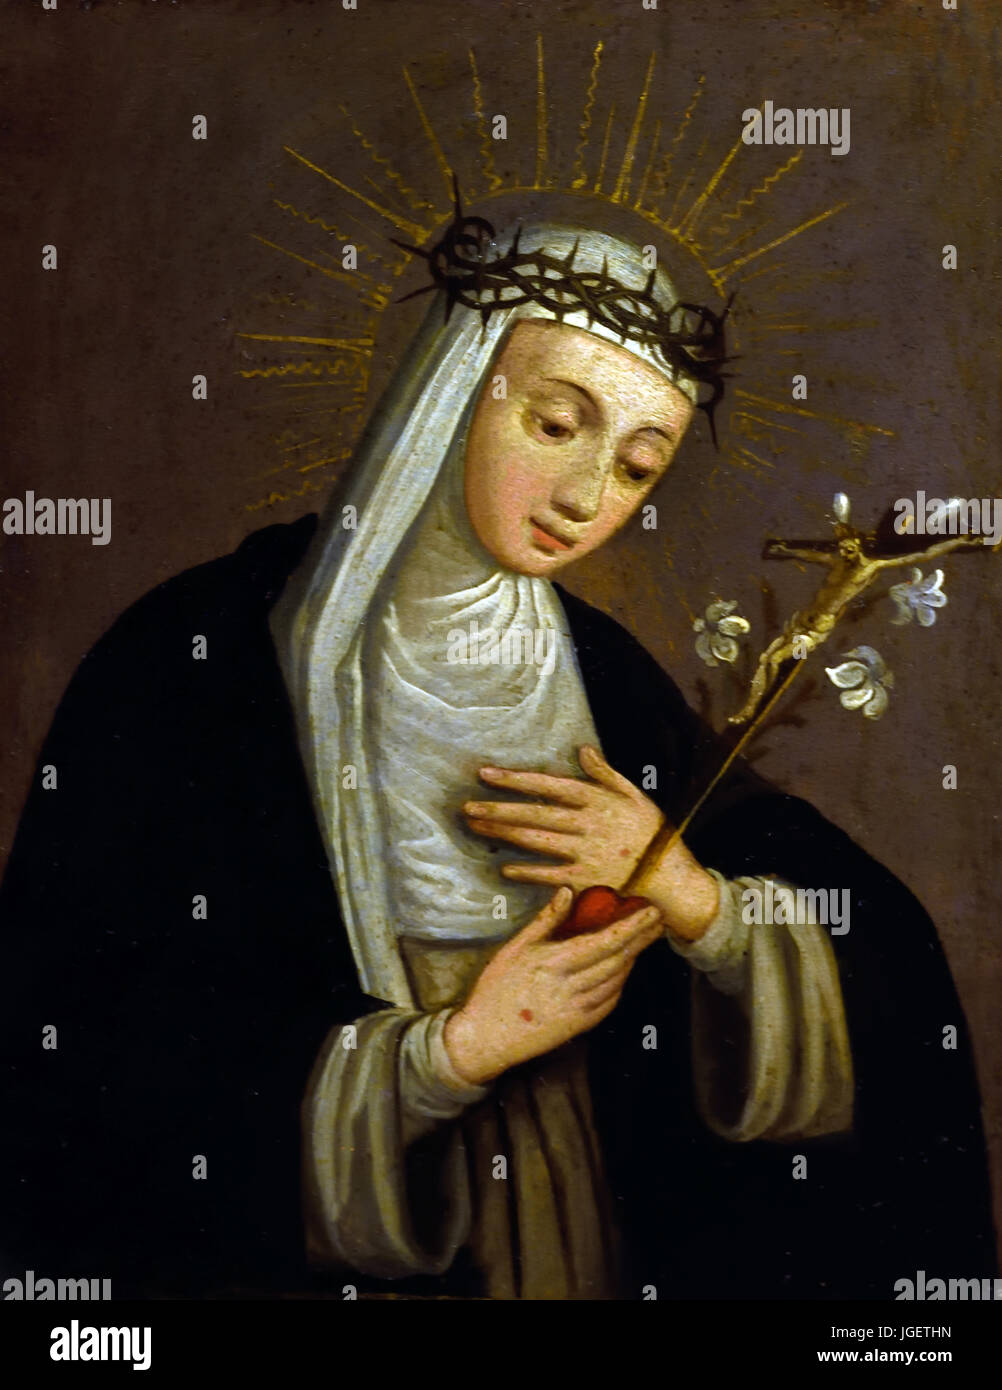 St. Catherine of Siena  - by Sister Plautilla Nelli (1524–1588) was a self-taught nun-artist and the first-known - Stock Image